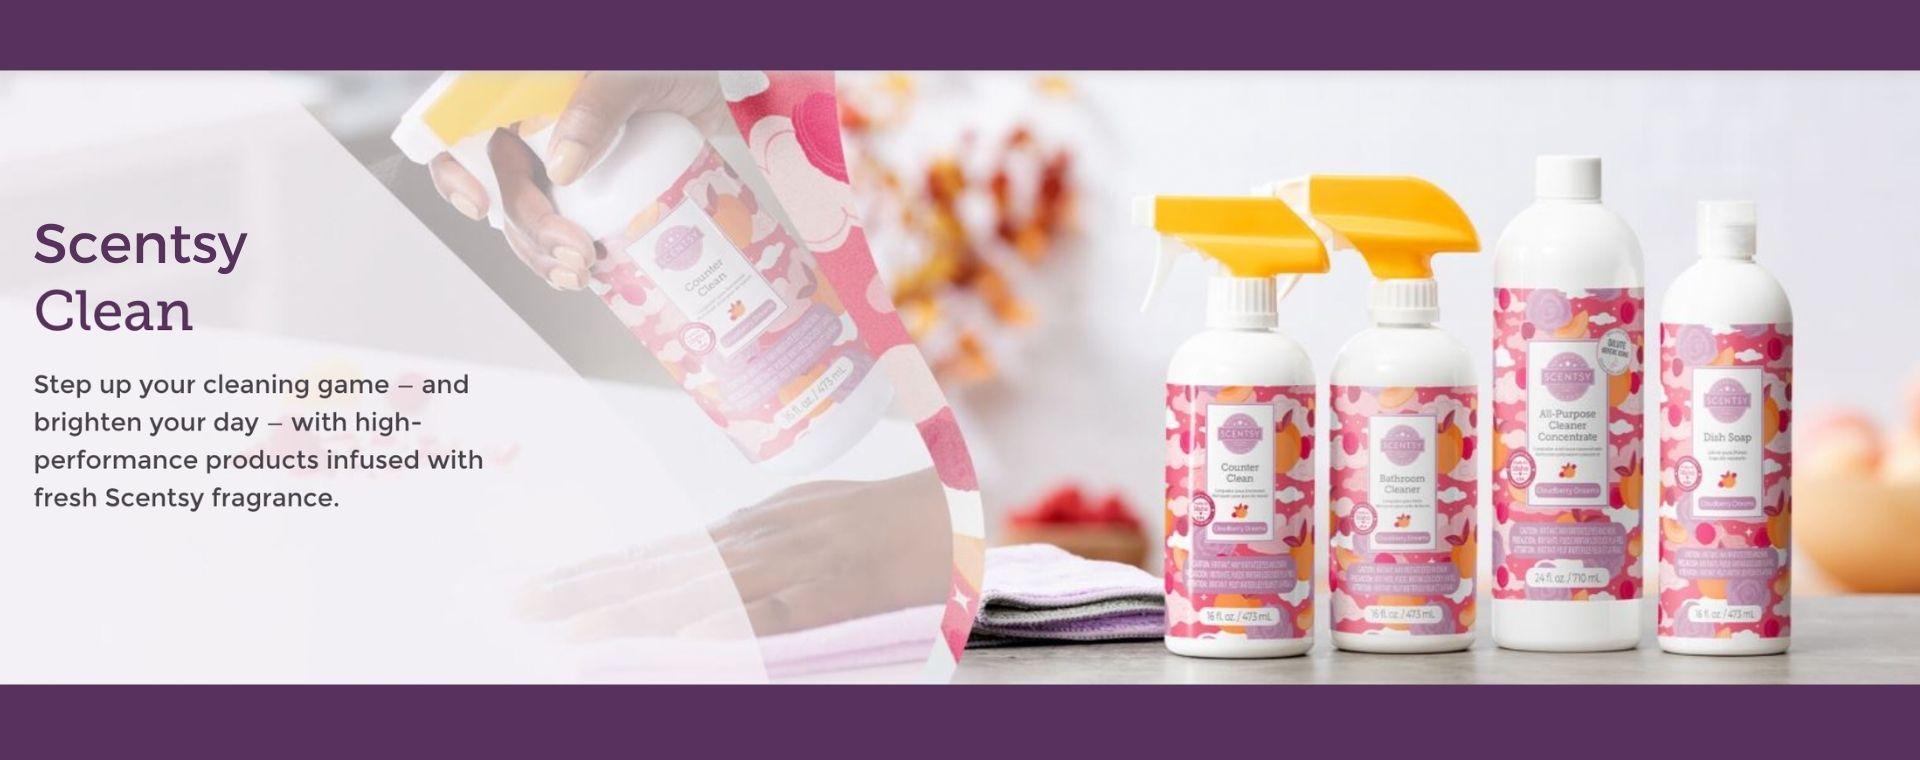 Scentsy Clean Fall 2021